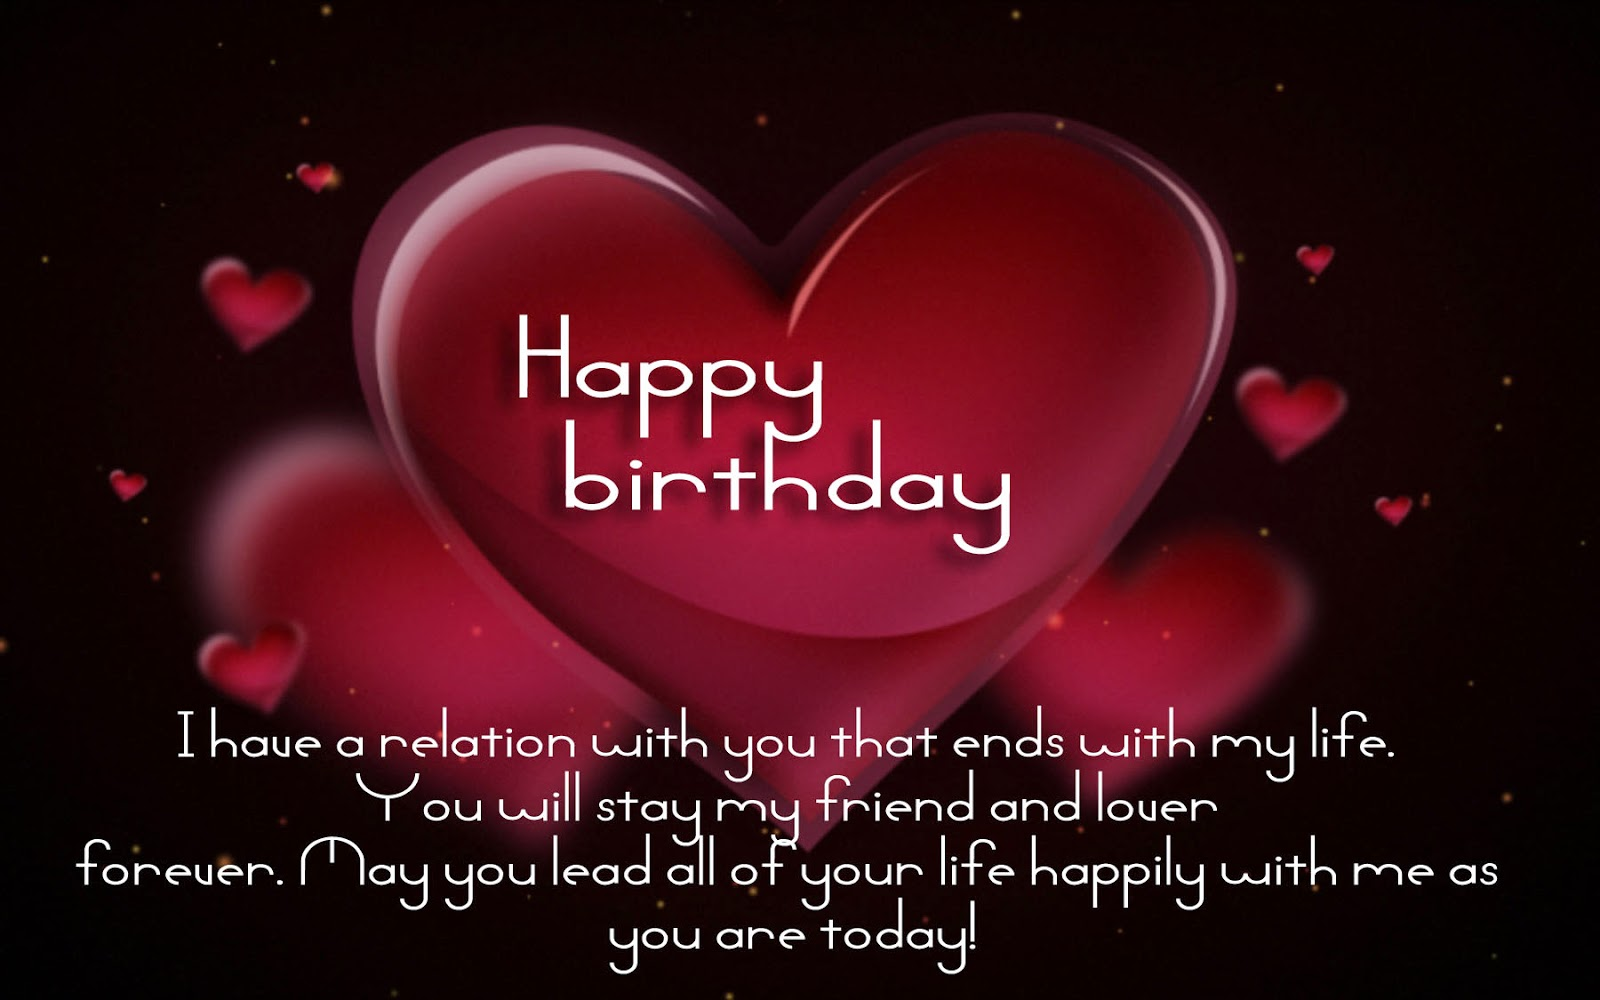 Happy Birthday love quotes, images, poems, messages